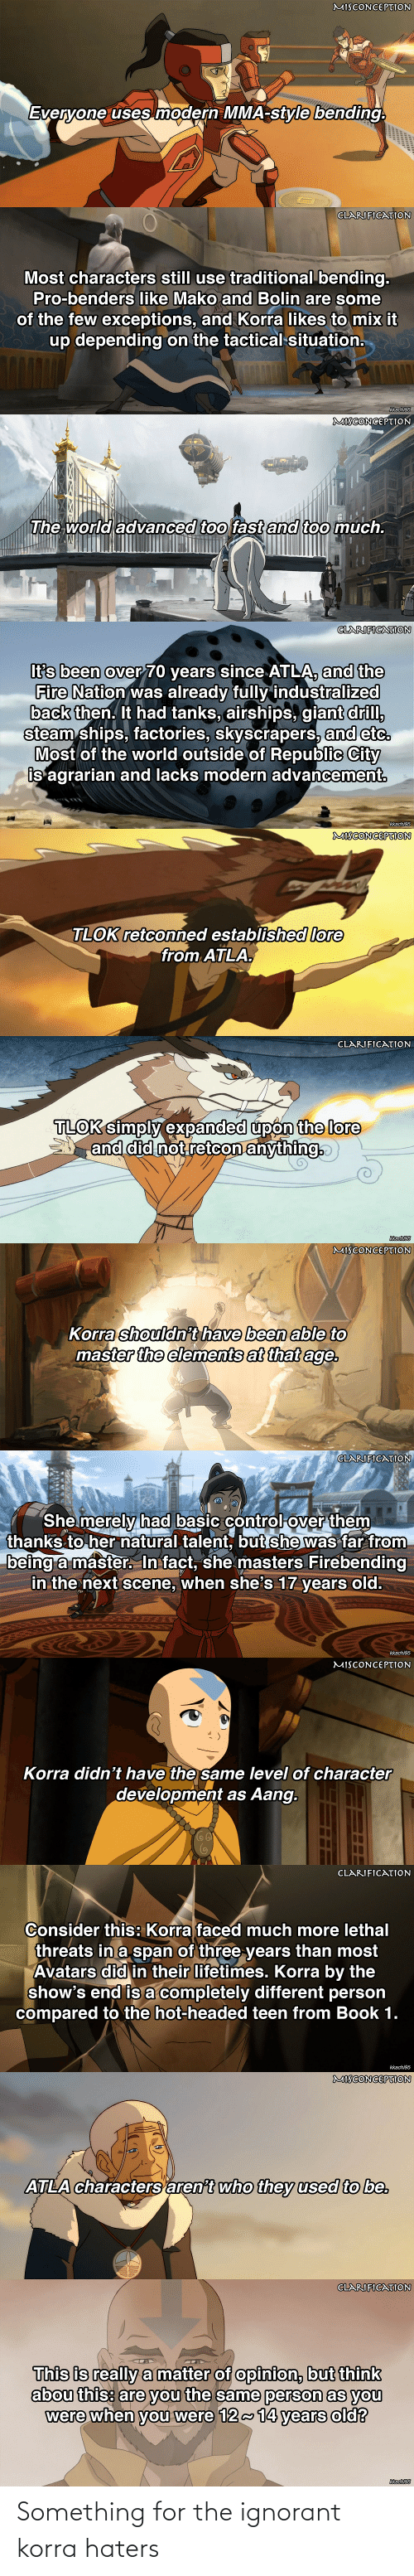 ignorant: Something for the ignorant korra haters